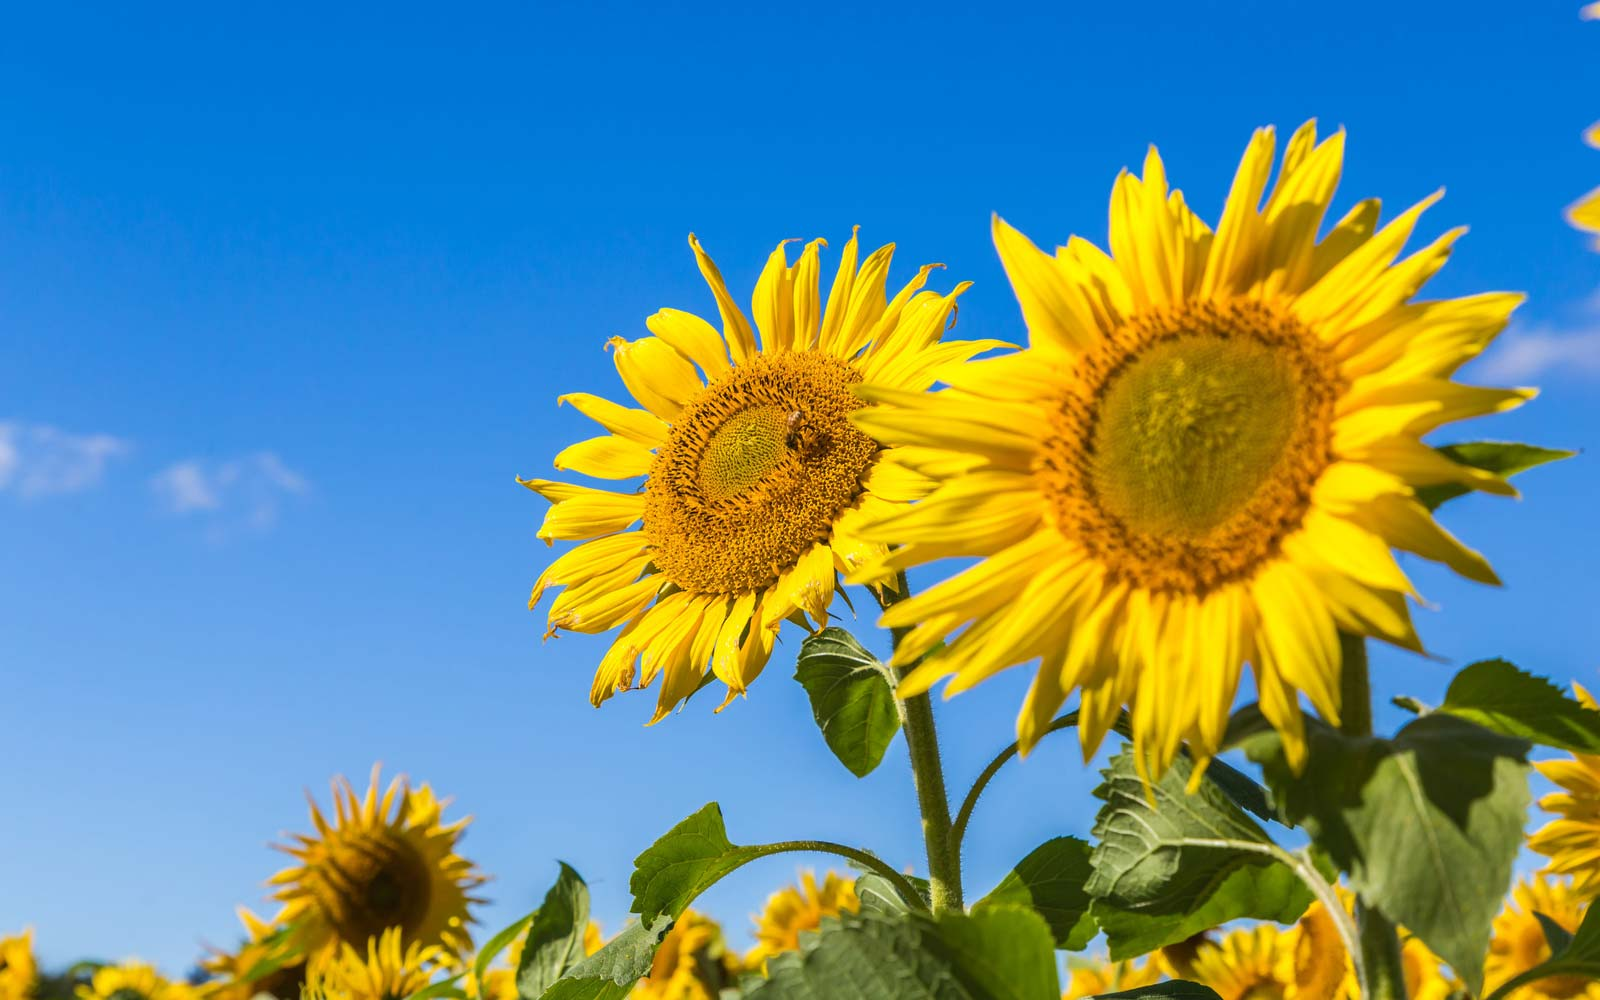 The Recent Heat Wave in the U.S. Is Causing Sunflowers to Bloom Early